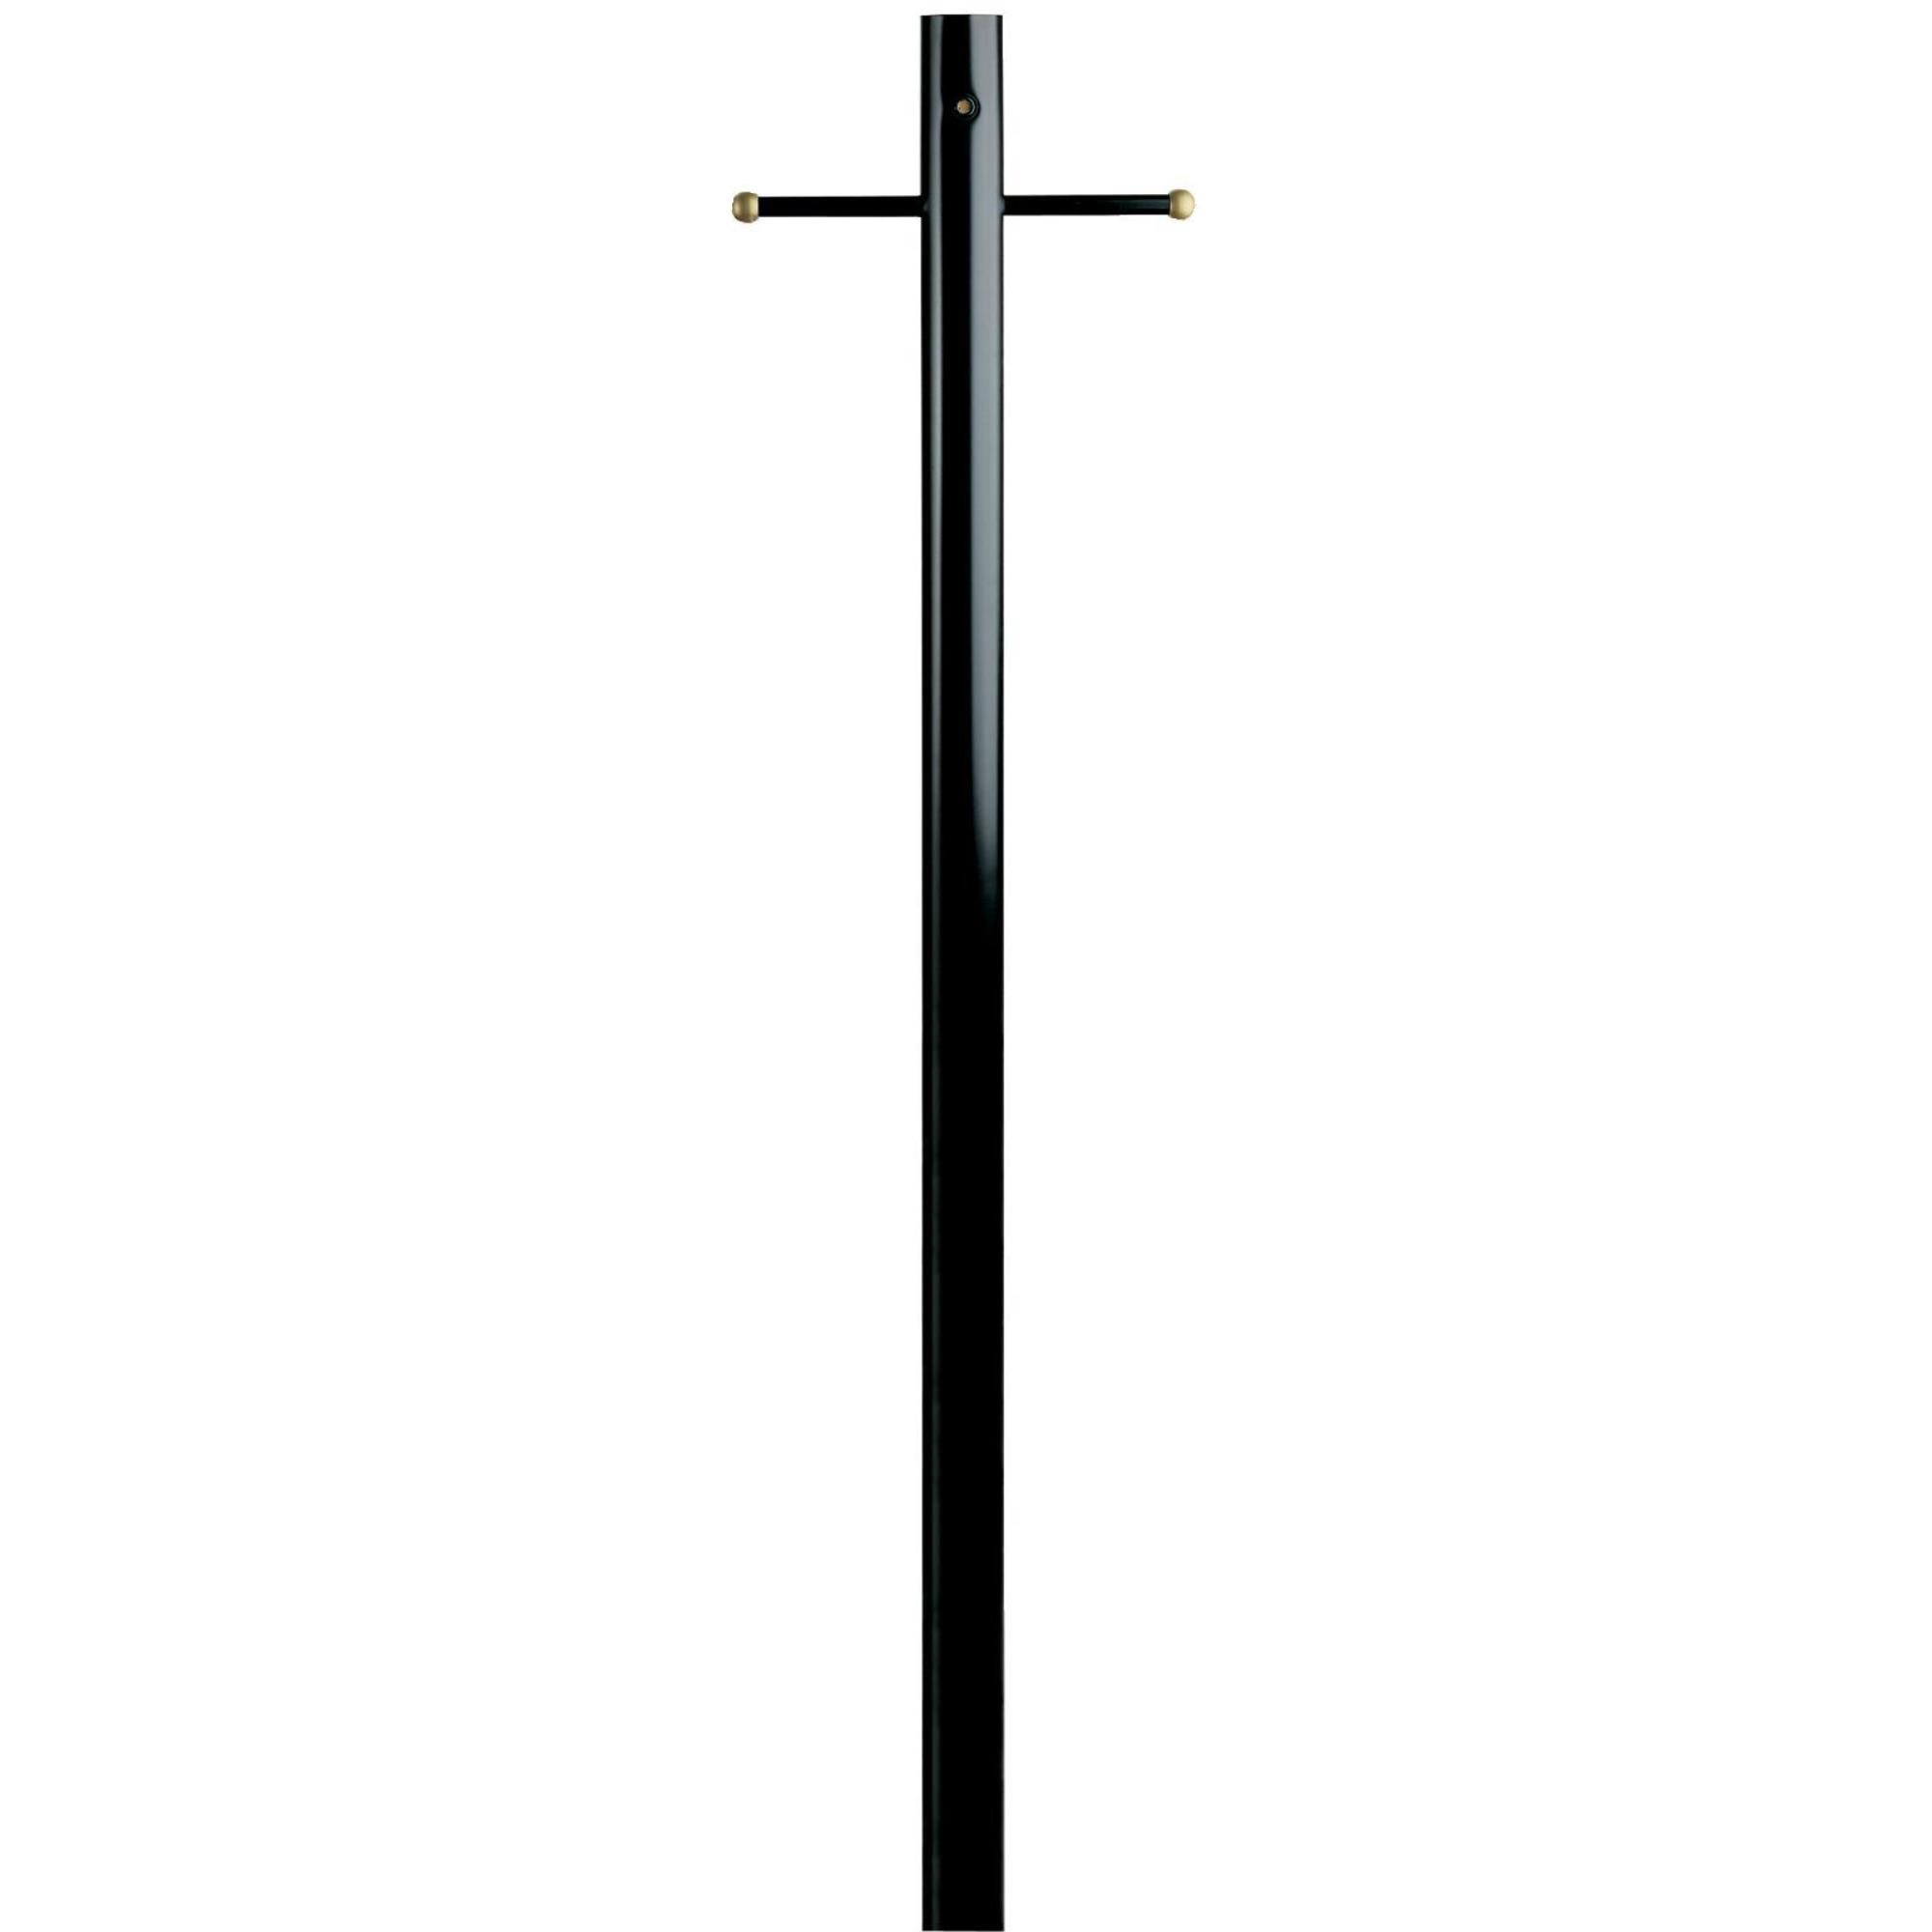 Westinghouse Lighting Lantern Post with Ground Convenience Outlet and Dusk to Dawn Sensor, Black Finish on Steel by Westinghouse Lighting